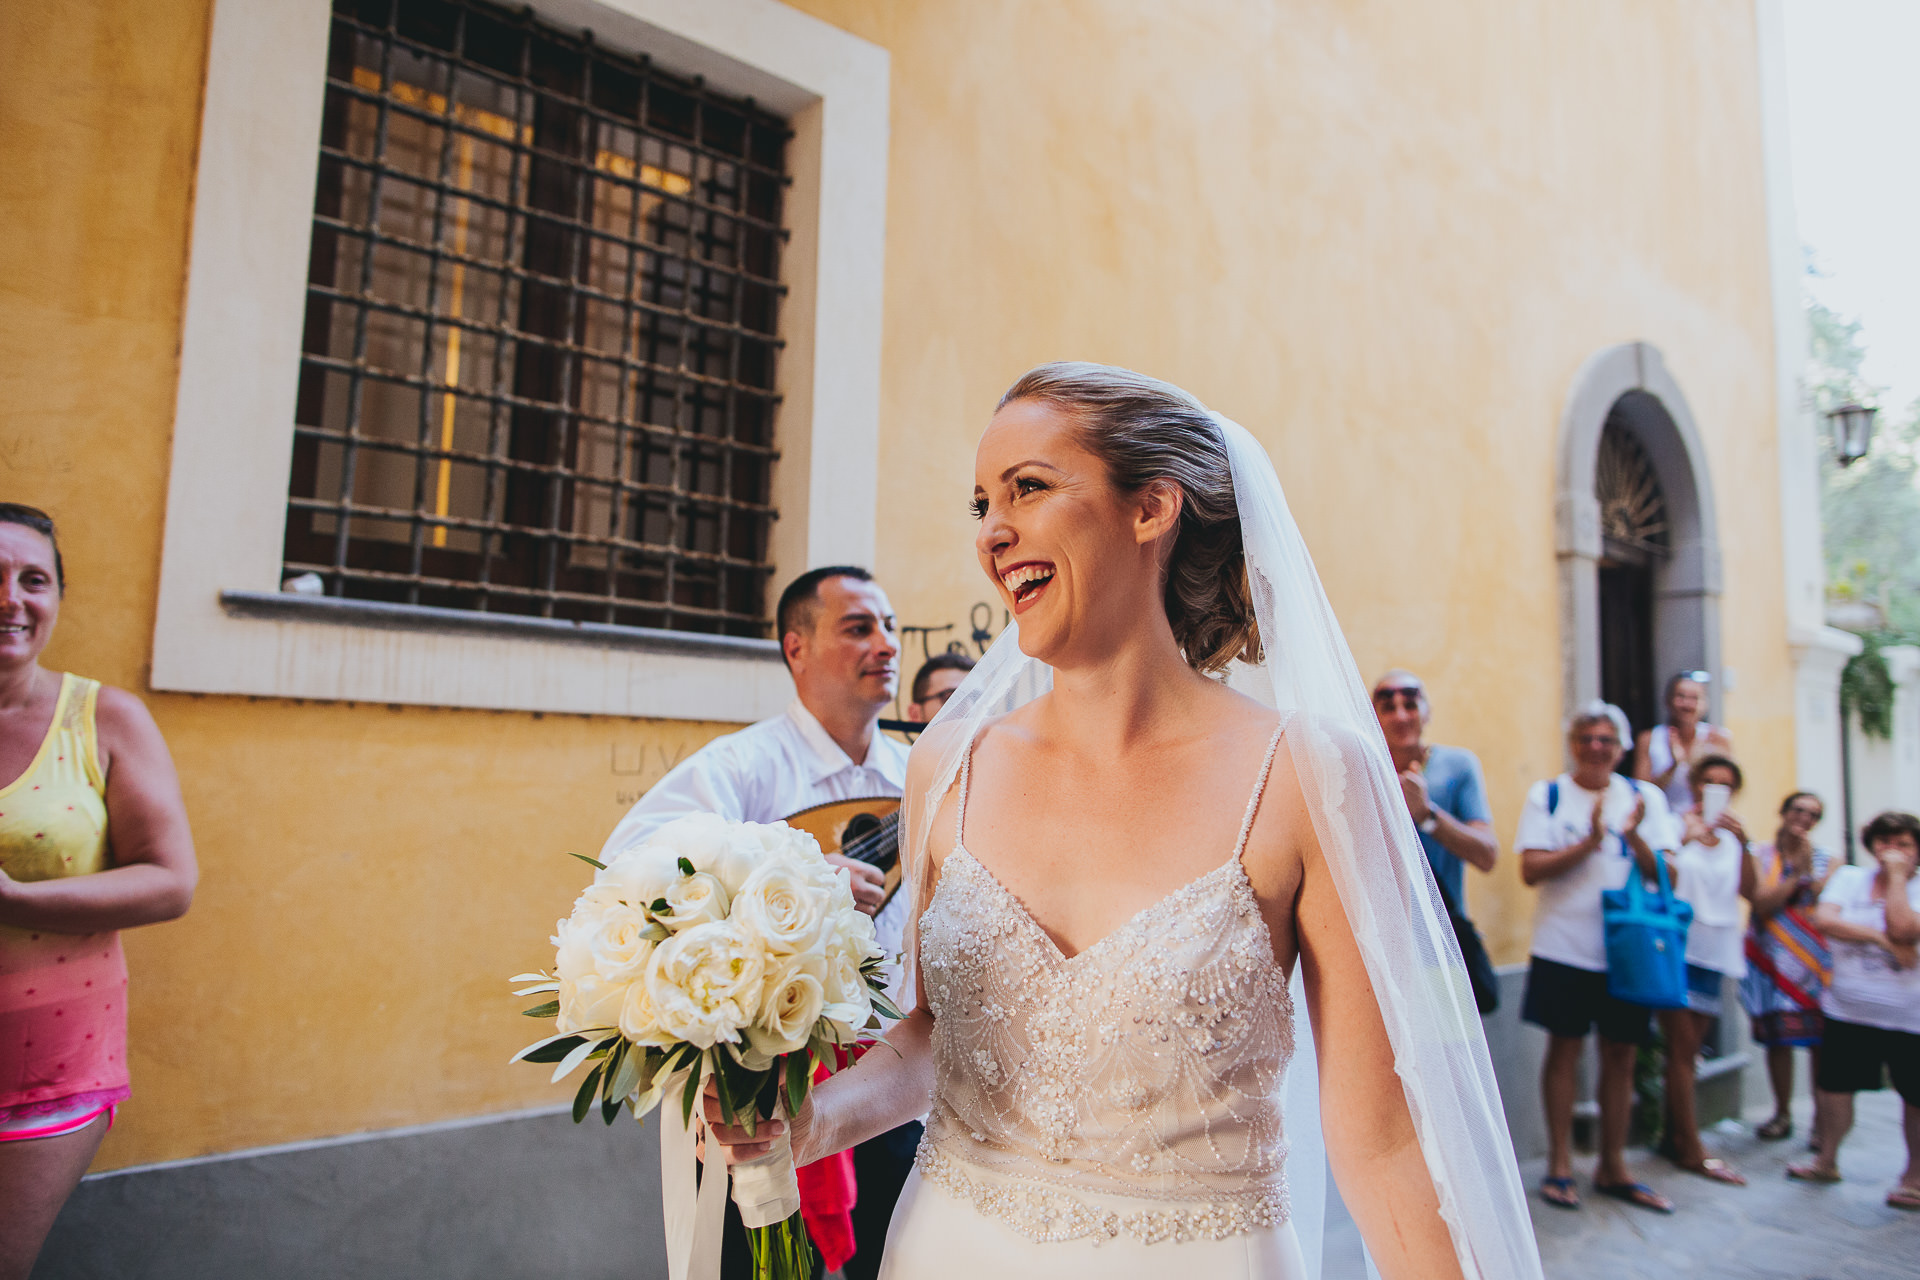 ITALY WEDDING PHOTOGRAPHY, ITALY WEDDING PHOTOGRAPHER, ITALY WEDDING, DESTINATION WEDDING, AYESHA PHOTOGRAPHY, WEDDING IN ITALY, MY SECRET ITALY WEDDING